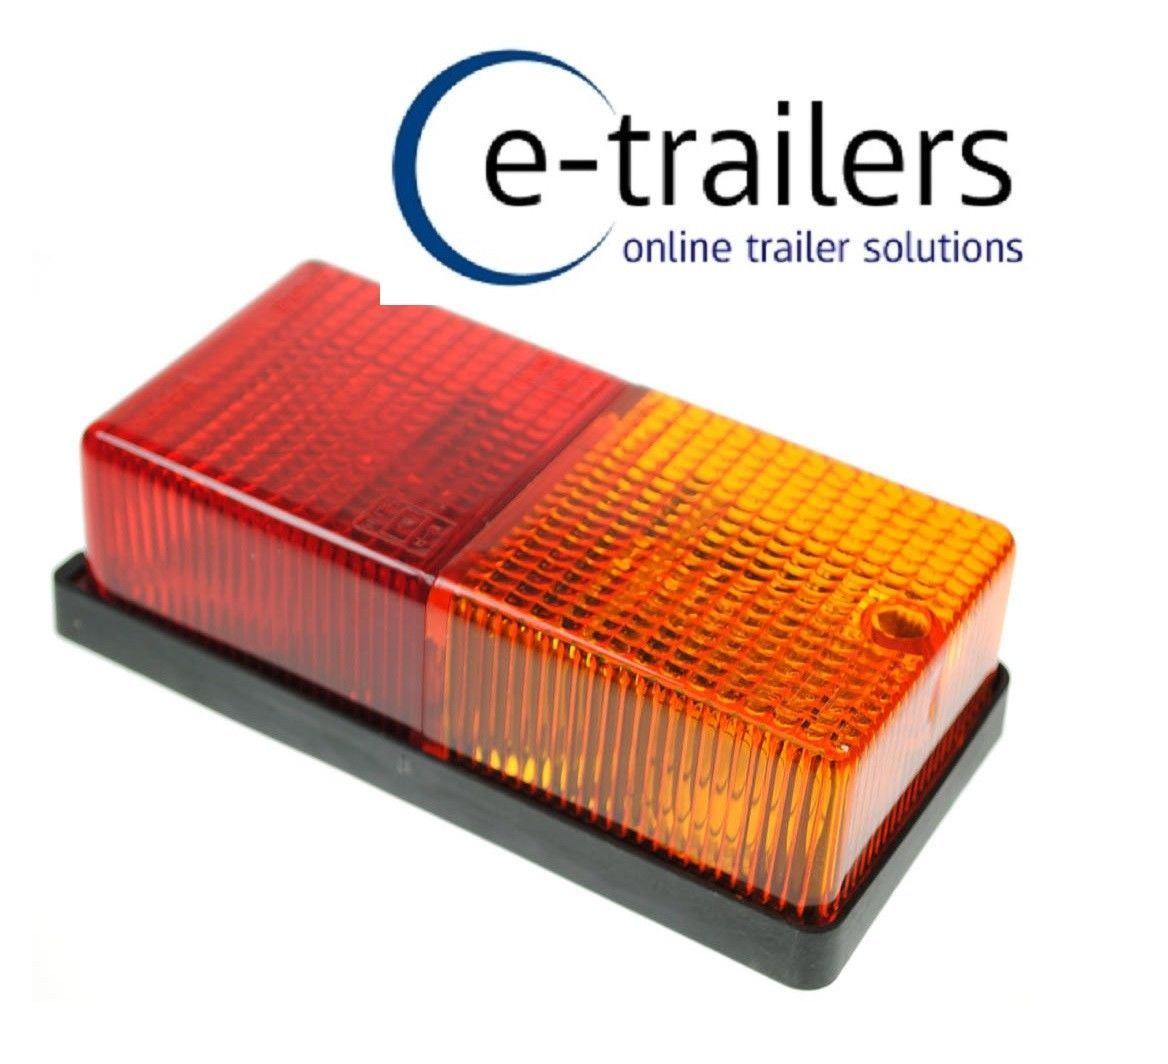 MAYPOLE PEREI 4 FUNCTION REAR LAMP LIGHT -TRAILERS LIGHT BOARD HORSEBOX -  MP10B